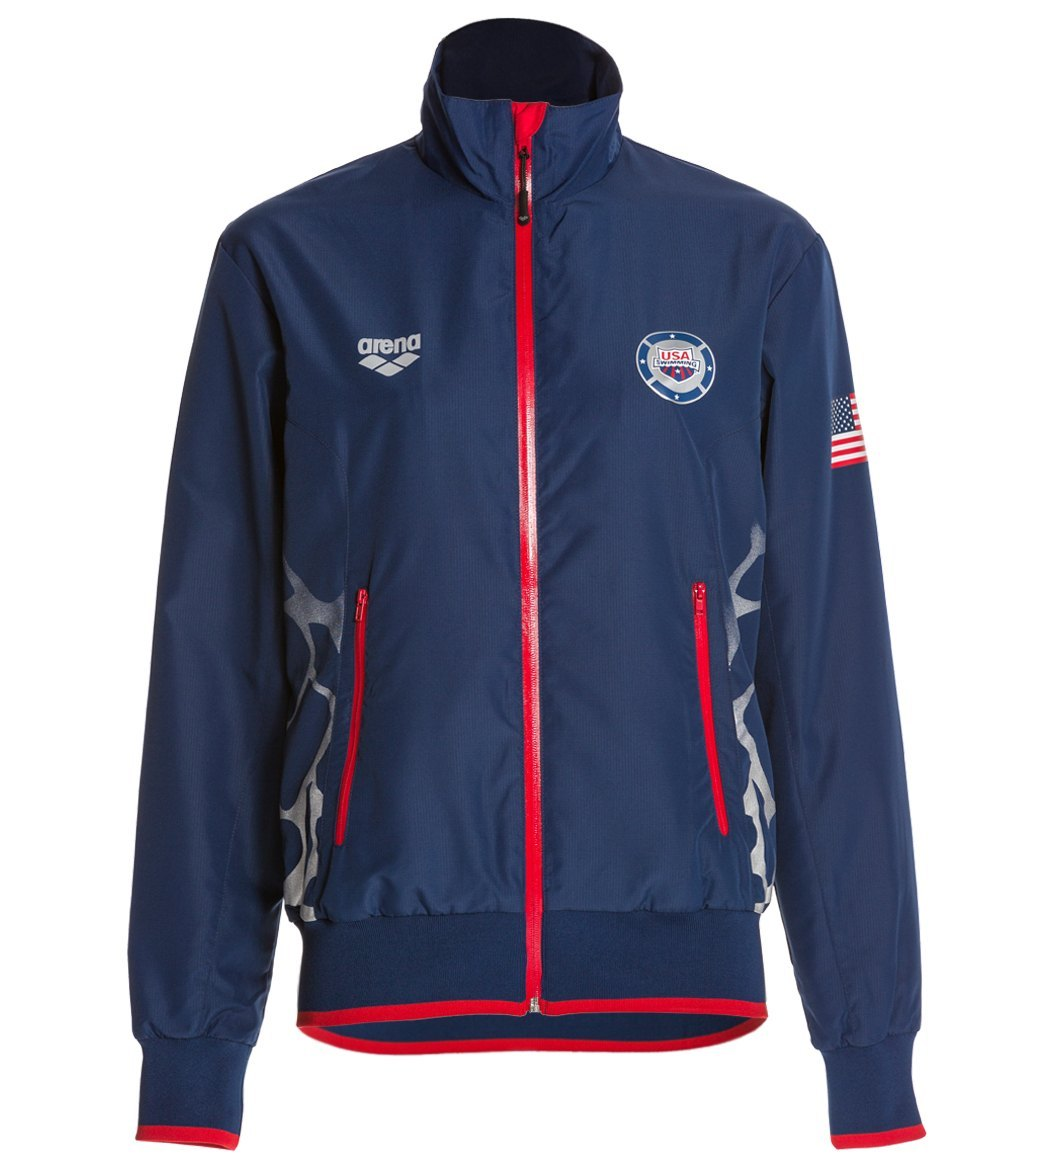 Arena USA Swimming Full Zip Jacket at SwimOutlet.com - Free Shipping